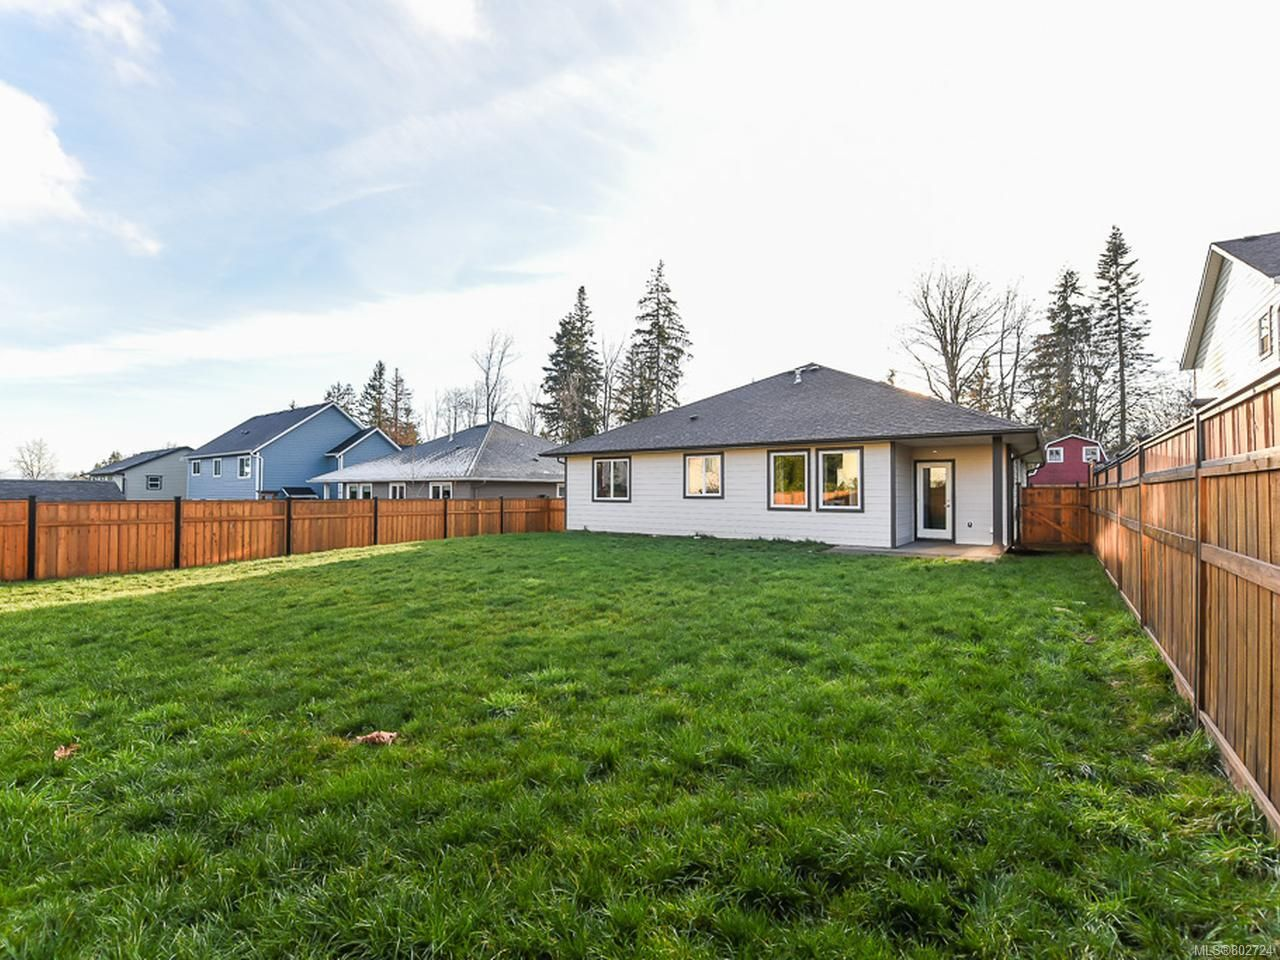 Photo 25: Photos: 106 2883 Muir Rd in COURTENAY: CV Courtenay East House for sale (Comox Valley)  : MLS®# 802724